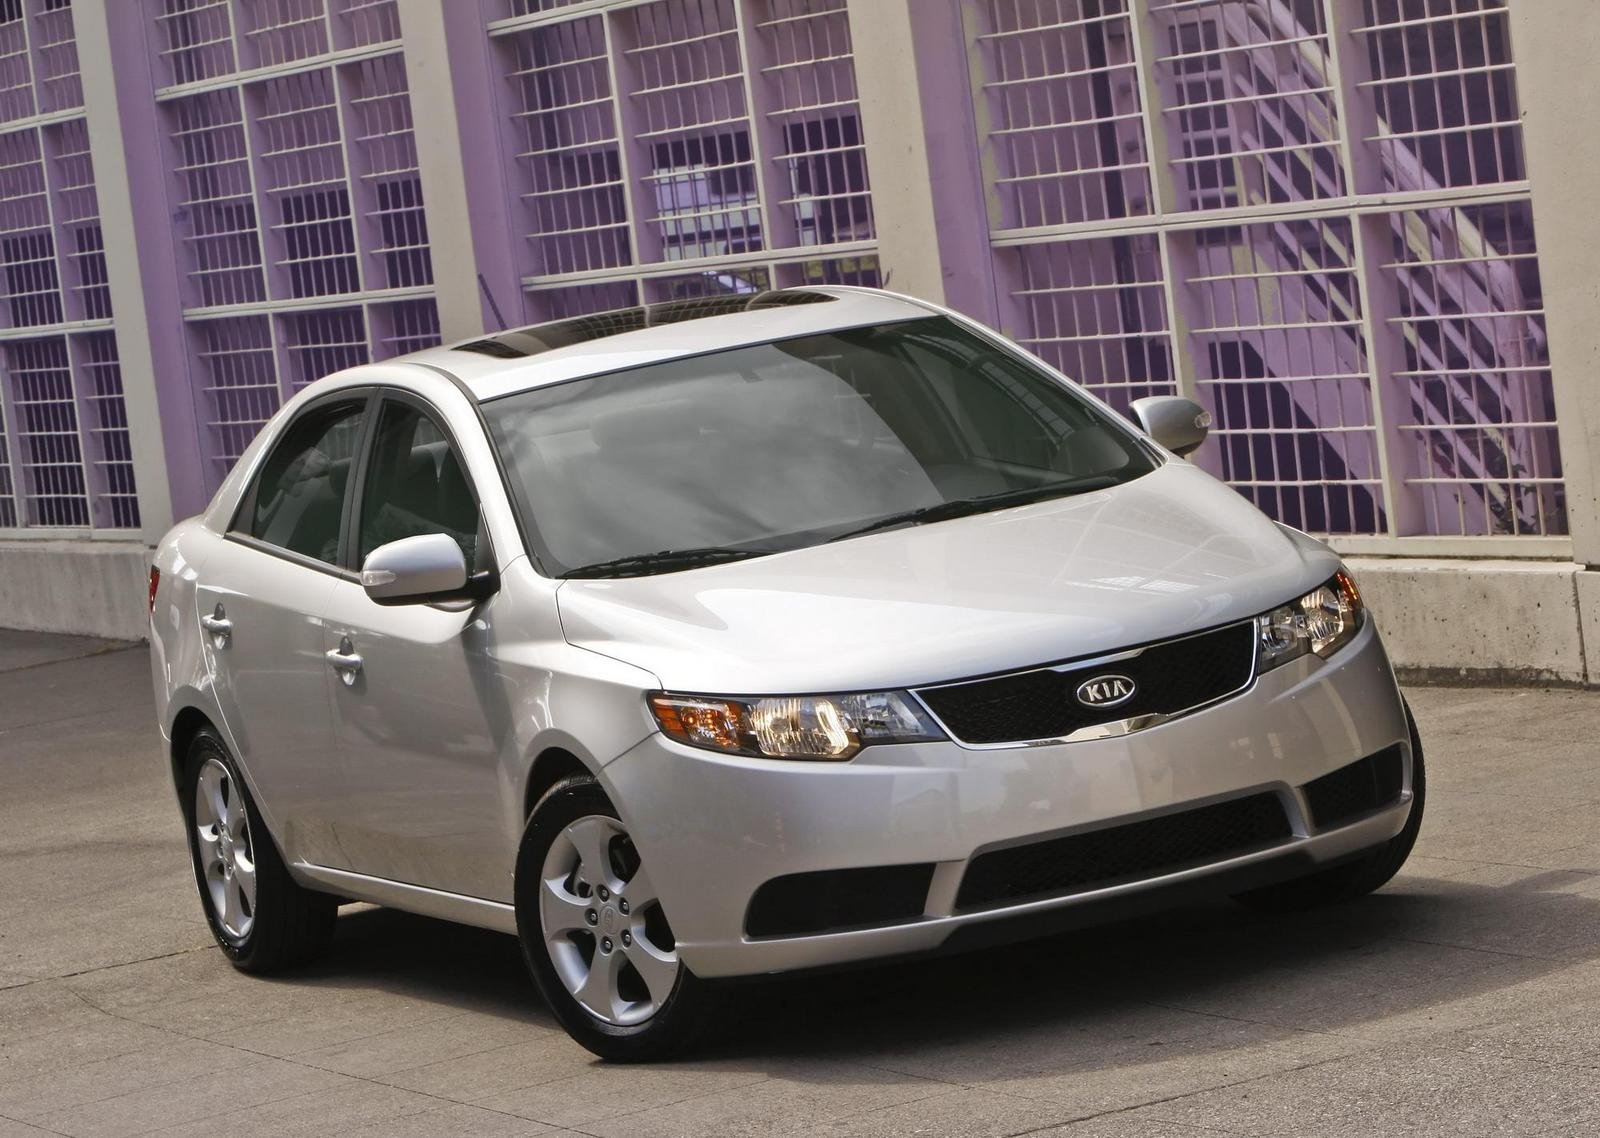 2010 kia forte prices announced news top speed. Black Bedroom Furniture Sets. Home Design Ideas